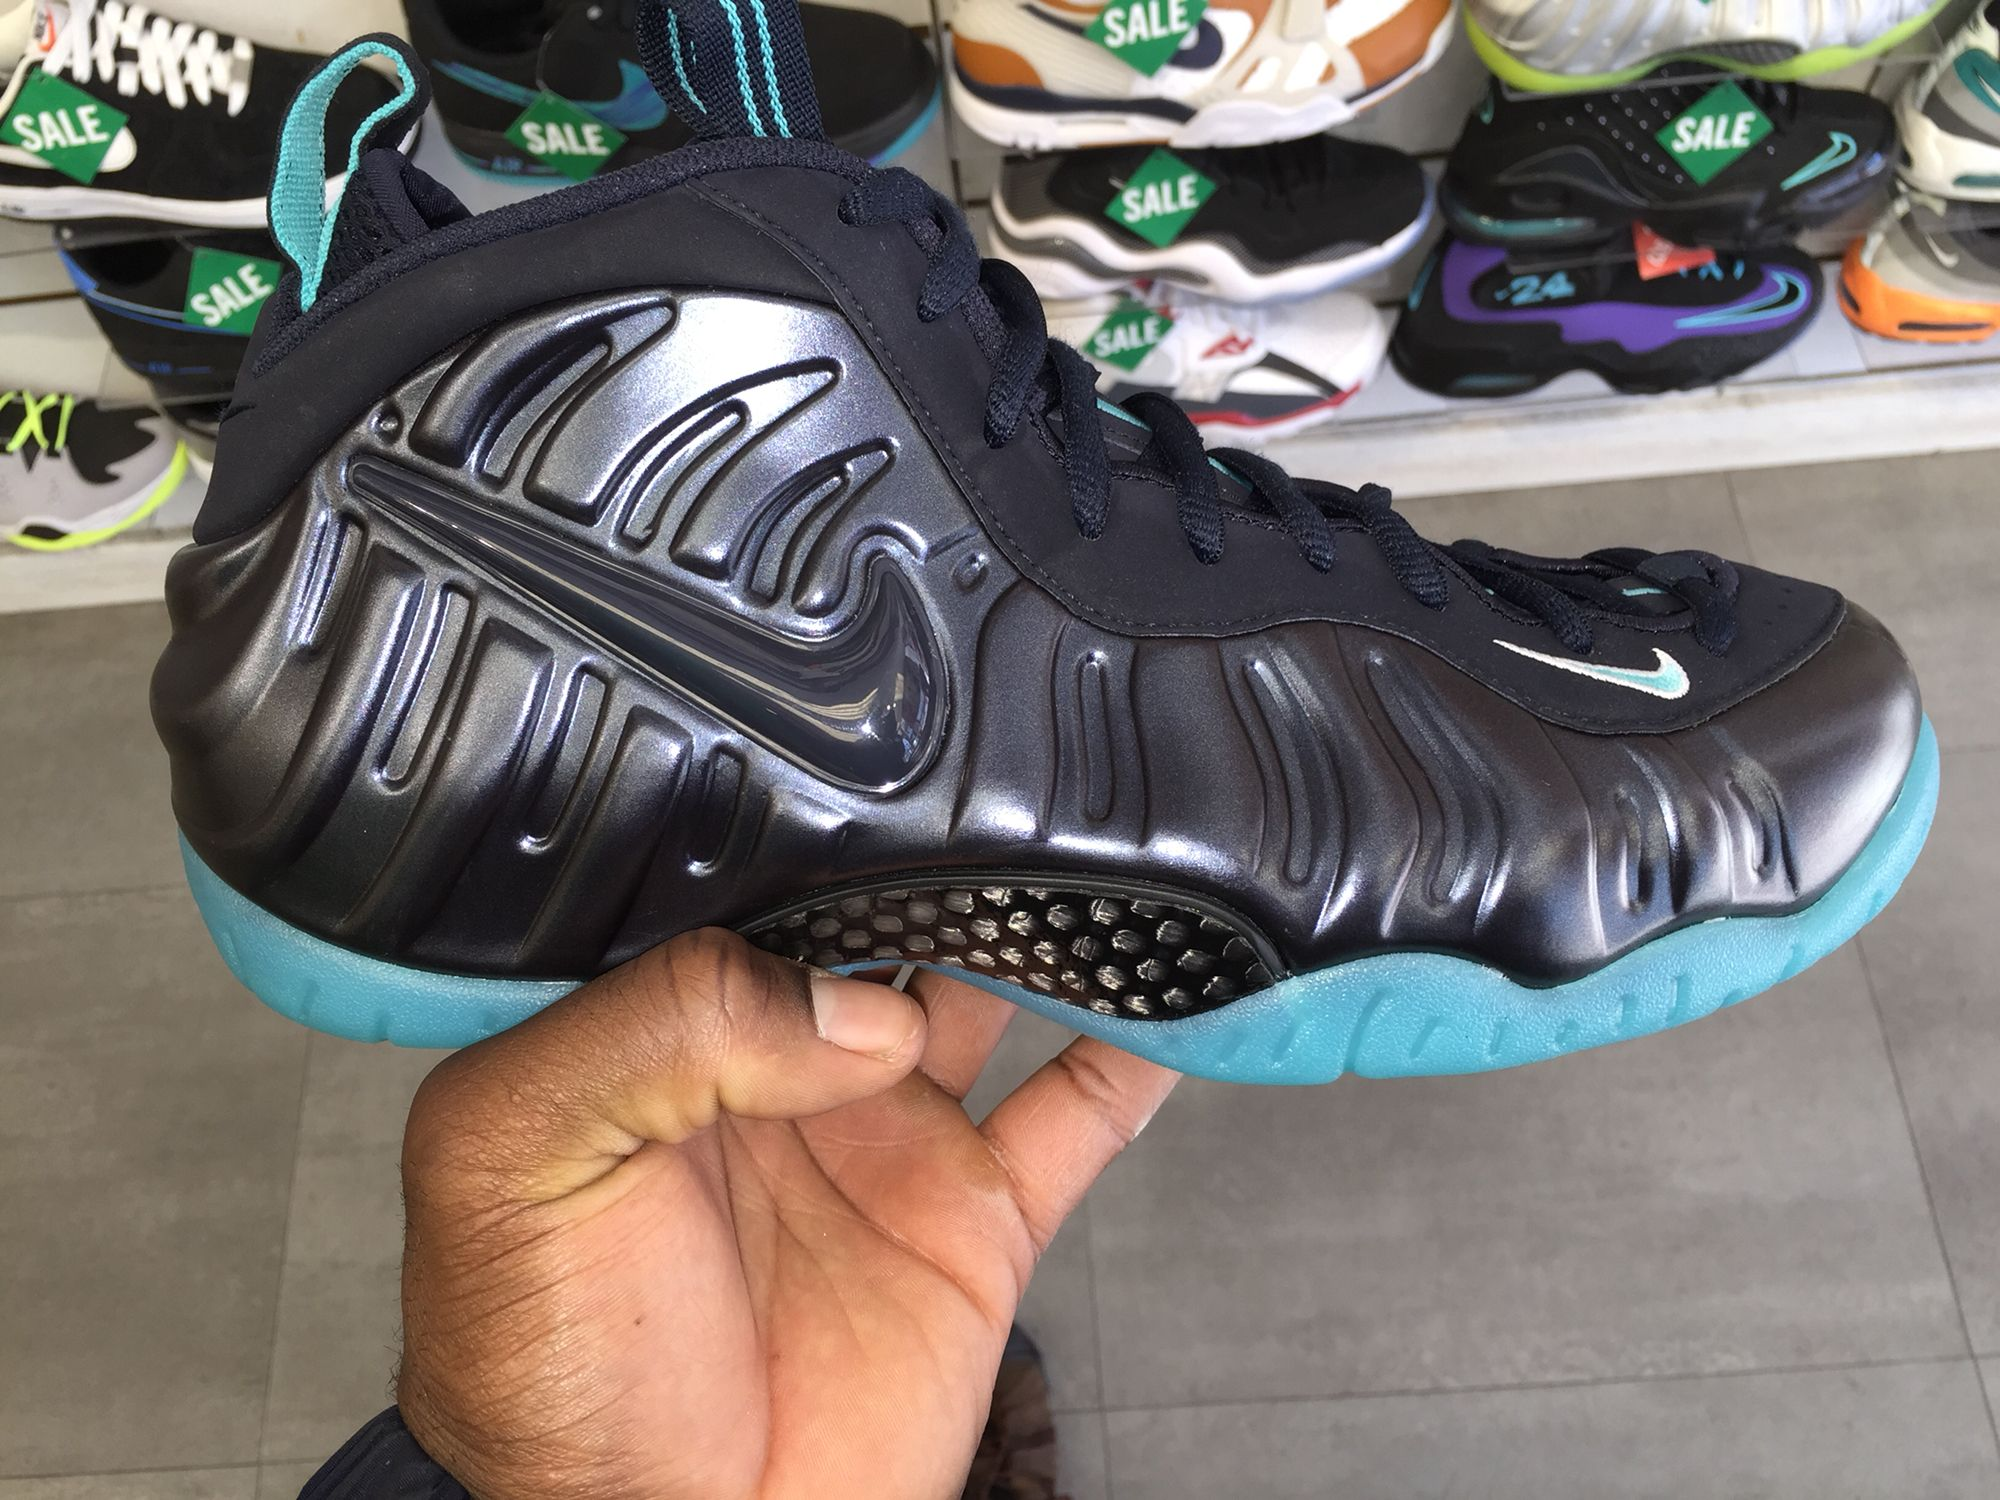 e0cb6d54579 Black and Bottom Blue Foams